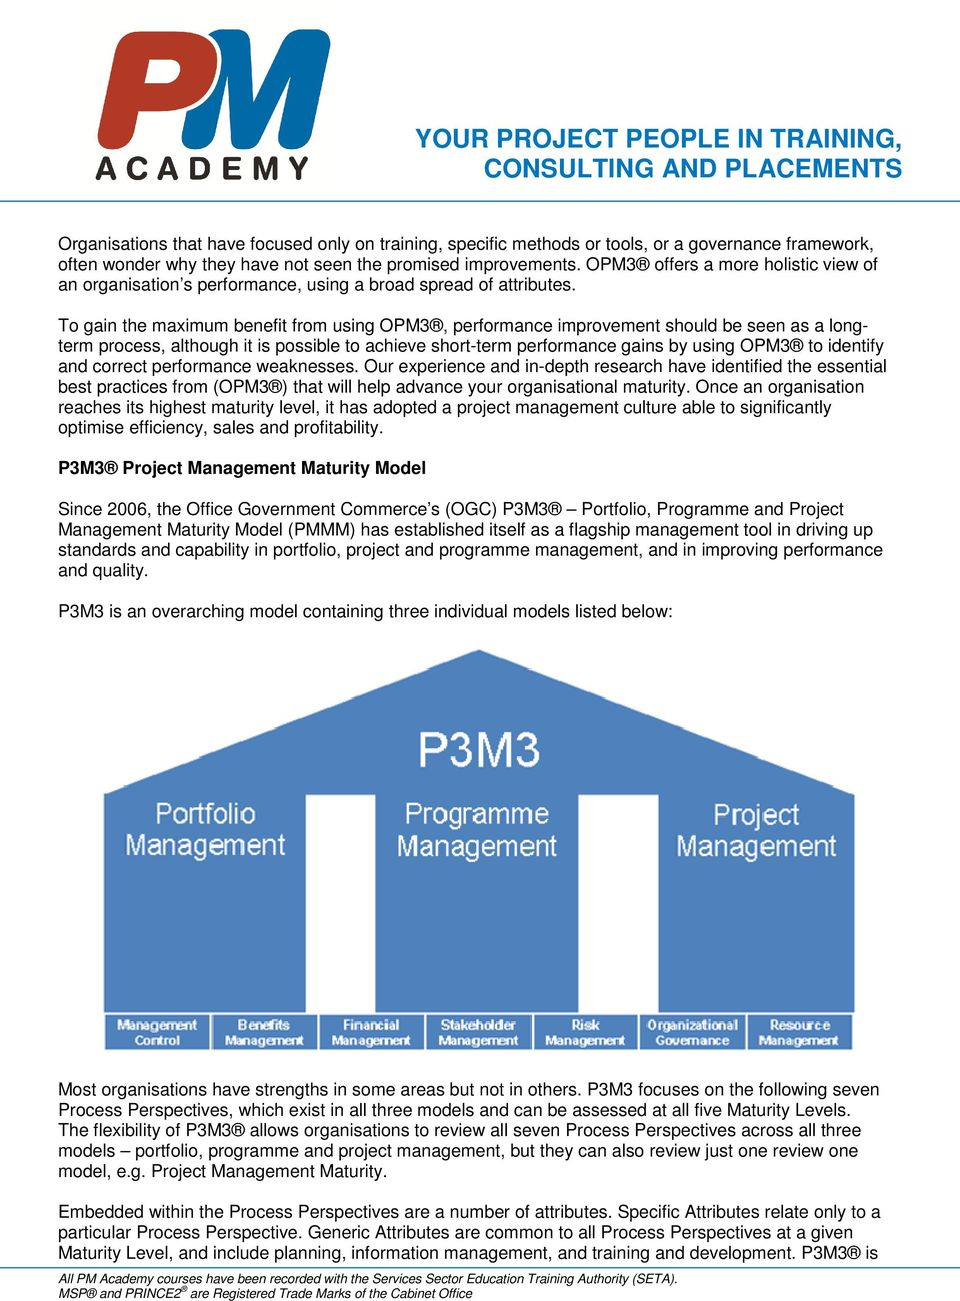 To gain the maximum benefit from using OPM3, performance improvement should be seen as a longterm process, although it is possible to achieve short-term performance gains by using OPM3 to identify